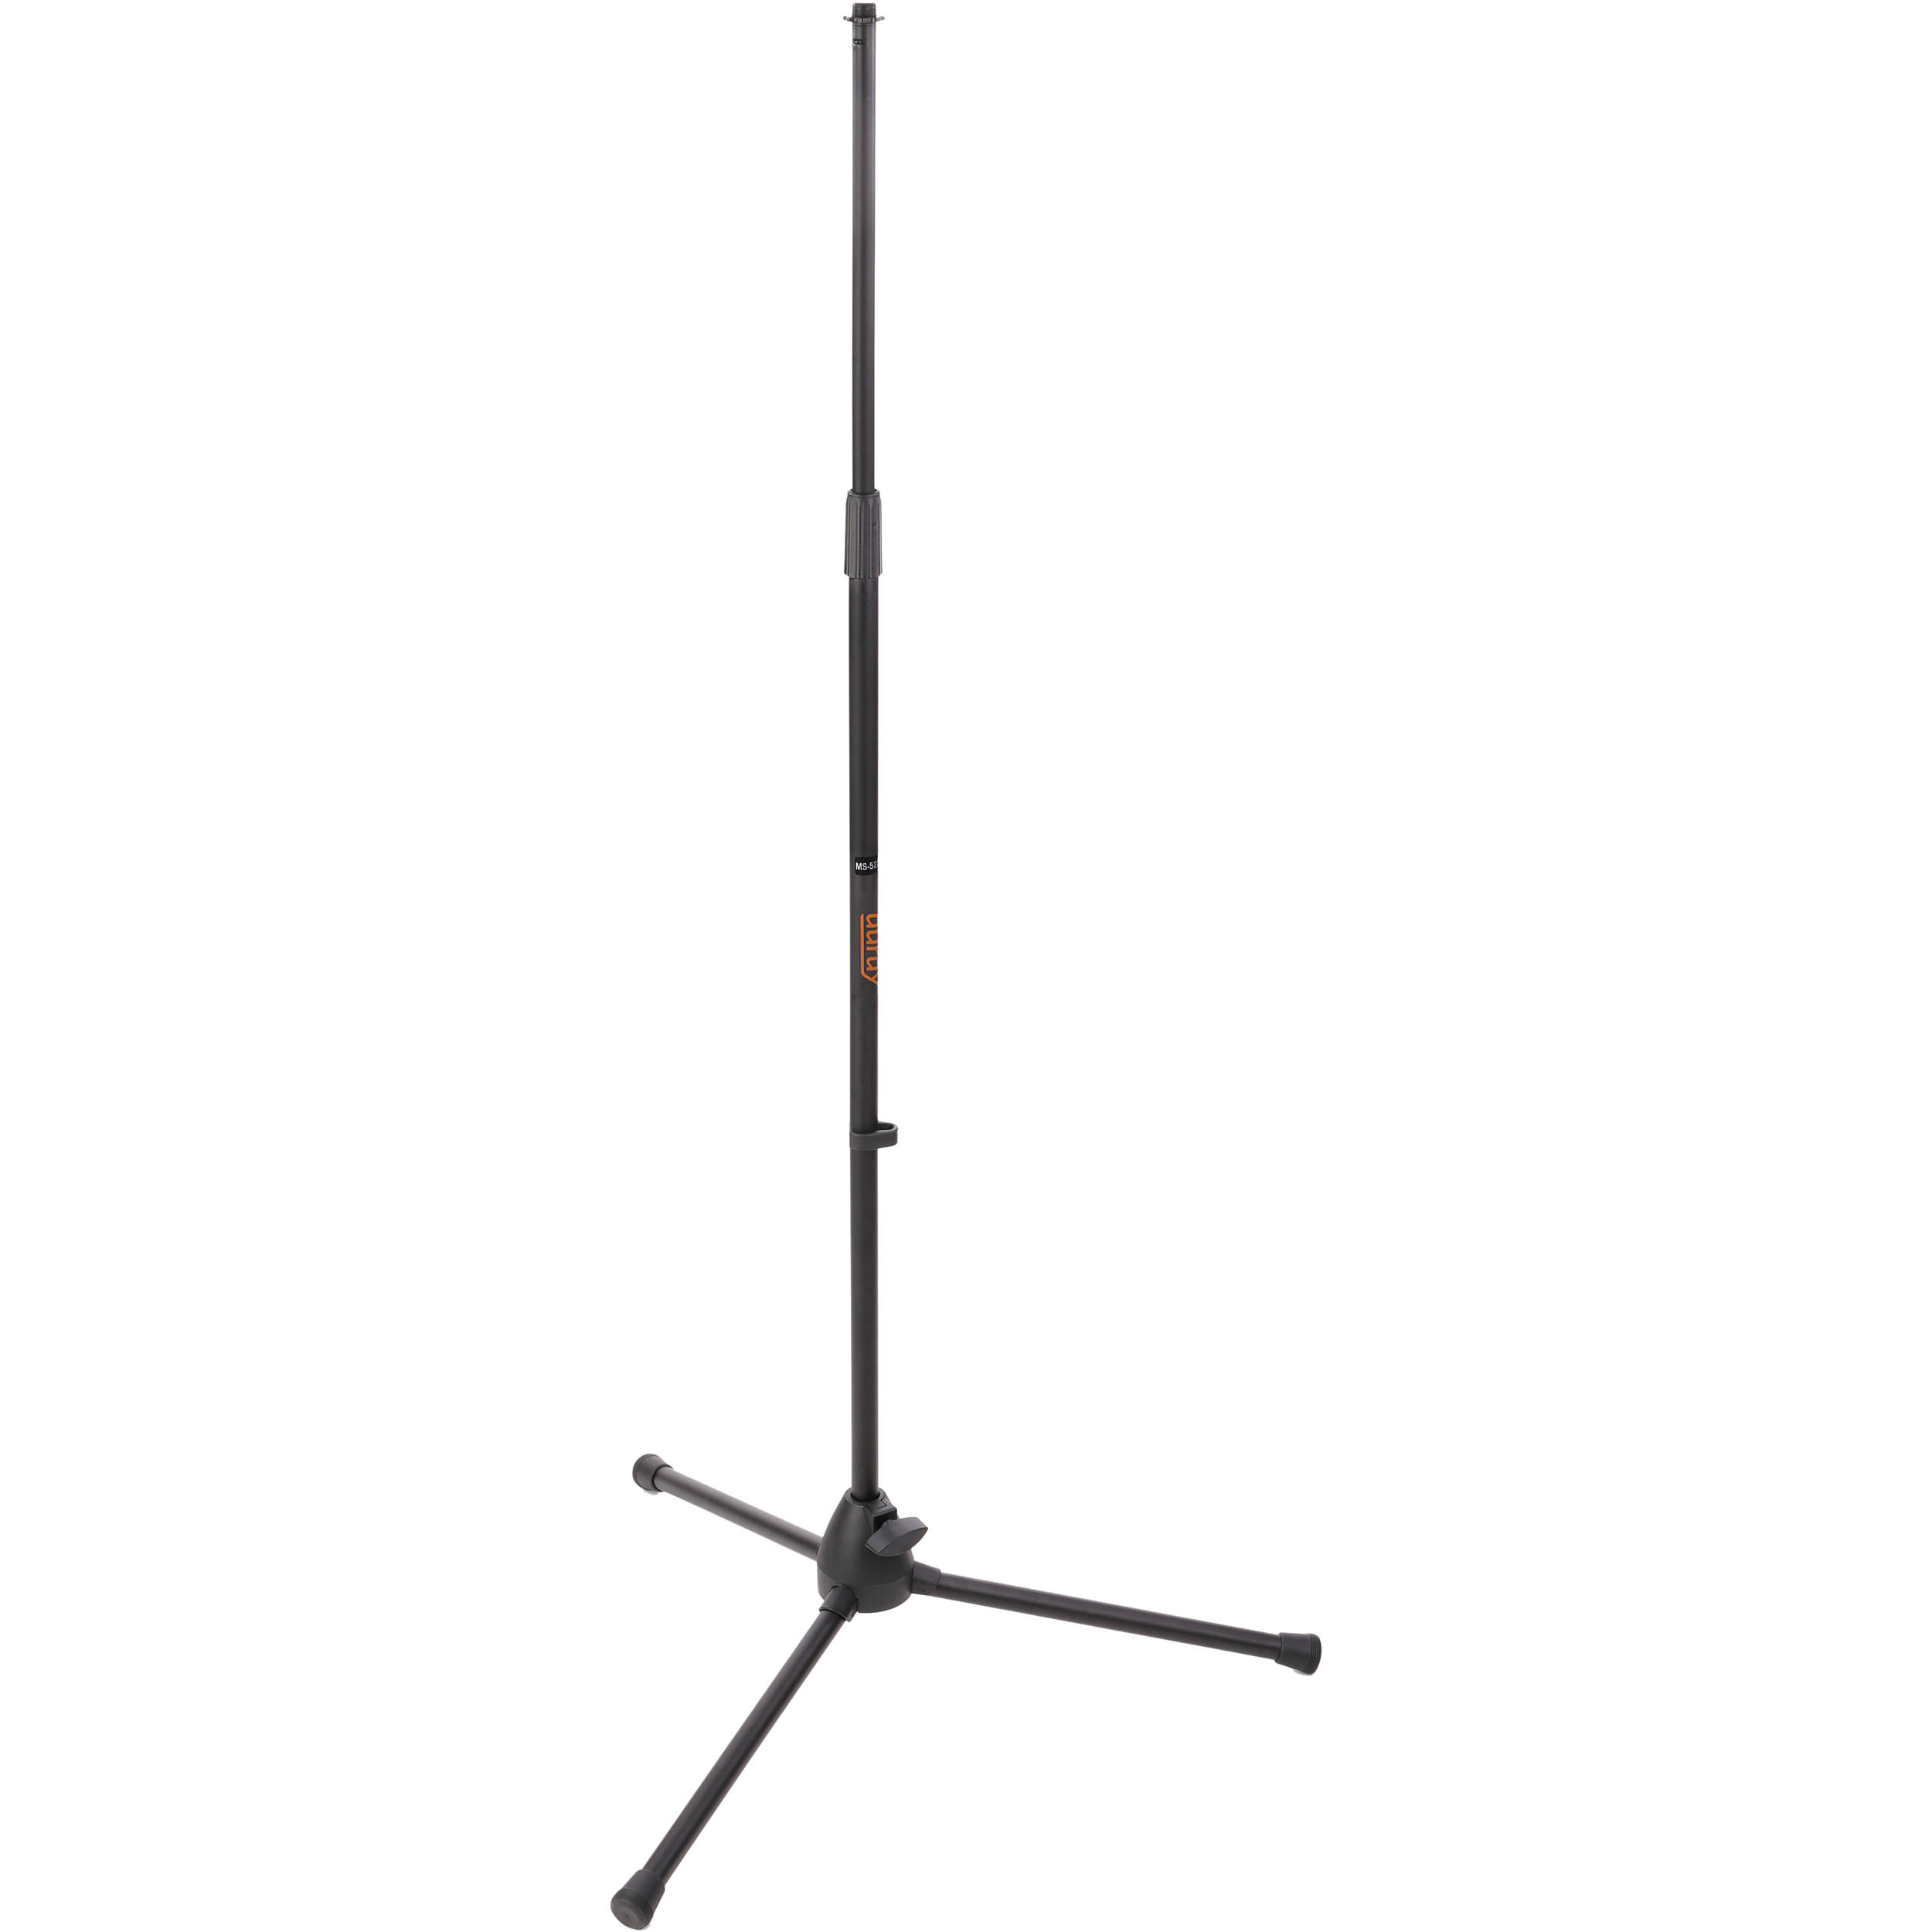 auray ms 5230 tripod microphone stand ms 5230 b h photo video. Black Bedroom Furniture Sets. Home Design Ideas